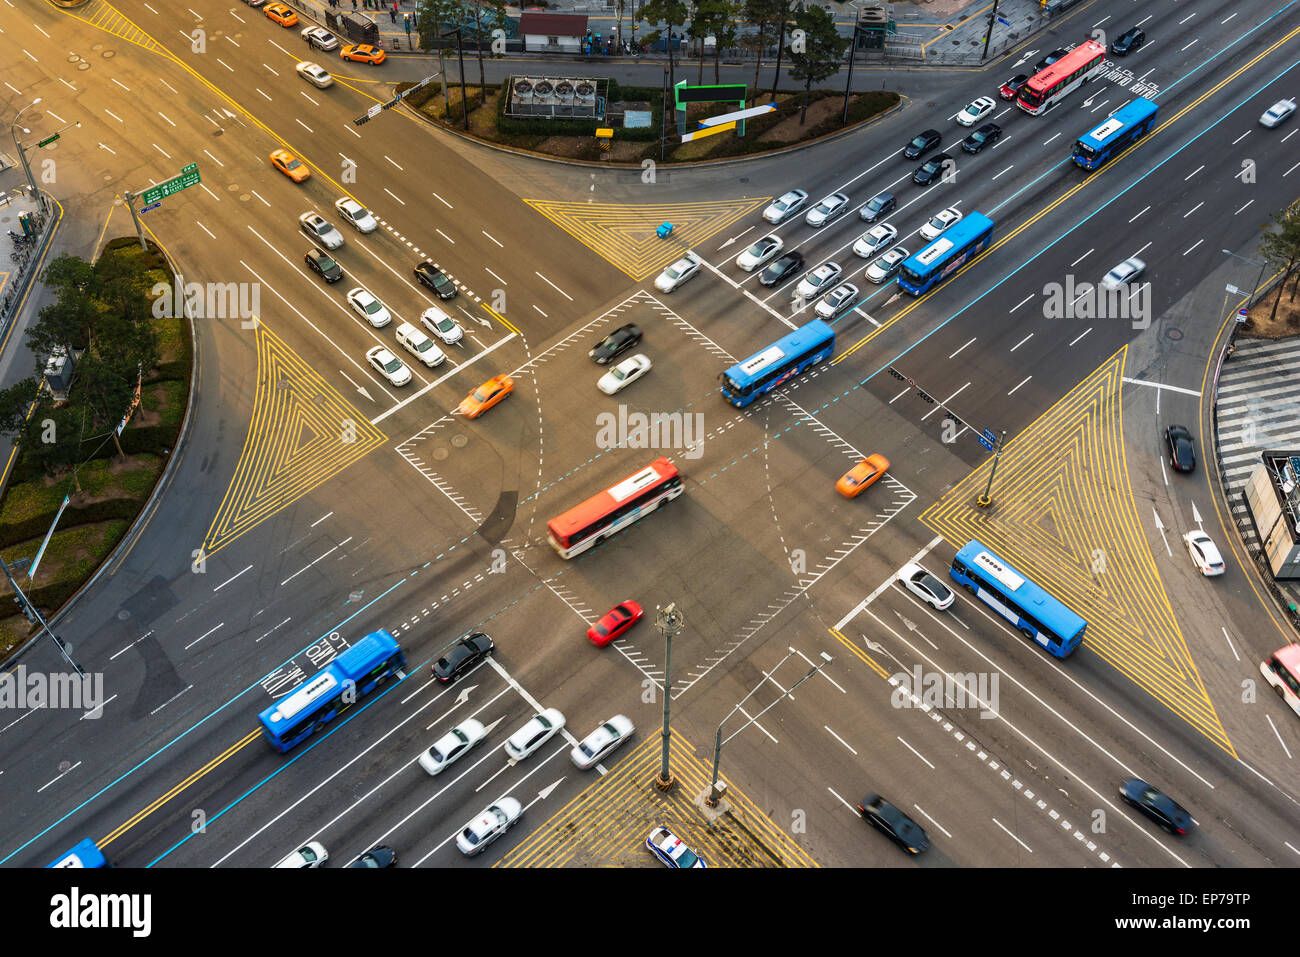 Vehicles pass through an intersection at rush hour in Gangnam, Seoul. - Stock Image